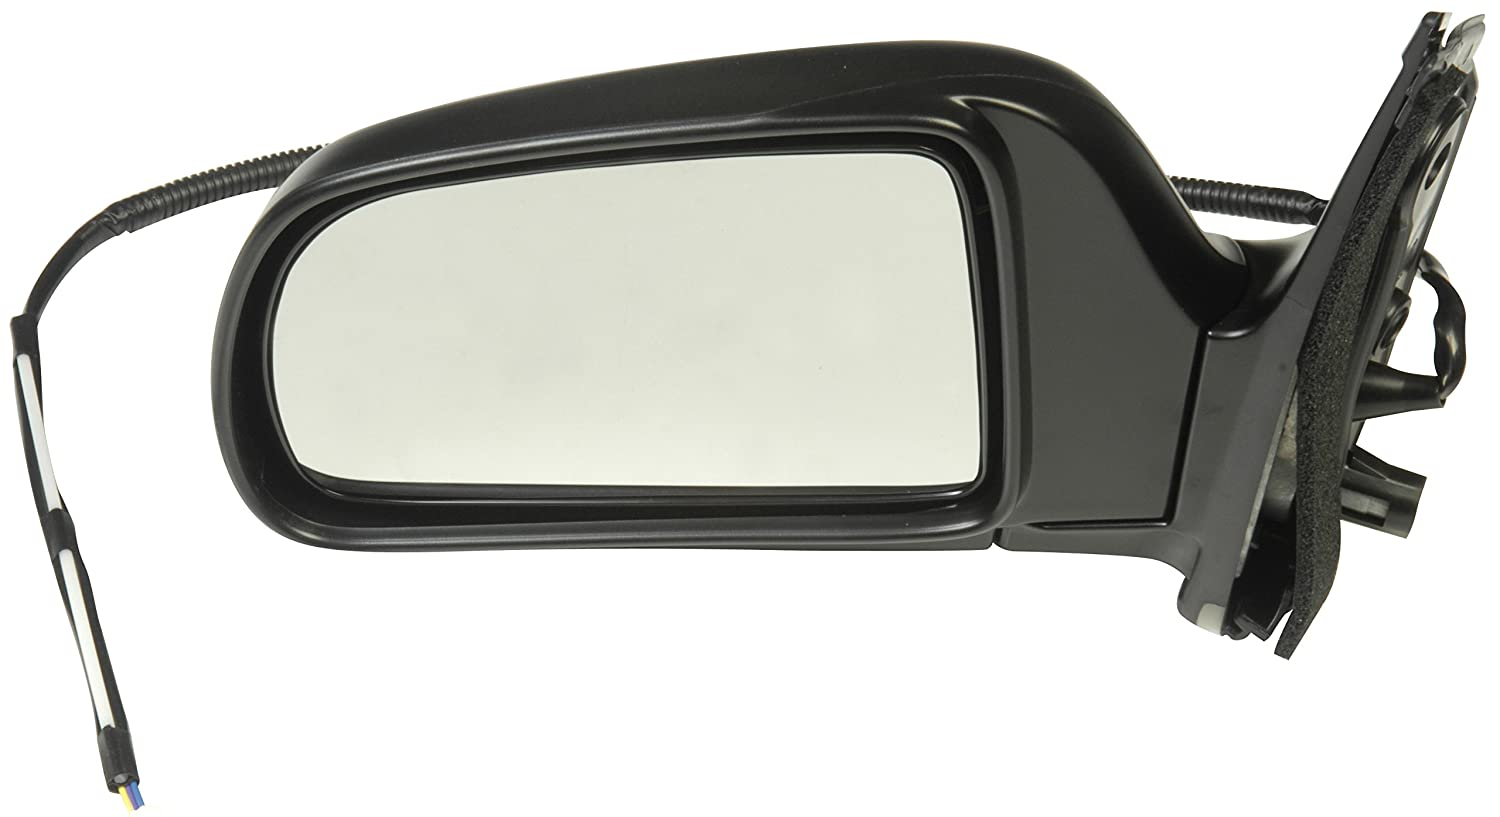 Dorman 955-1445 Toyota Sienna Driver Side Power Replacement Side View Mirror